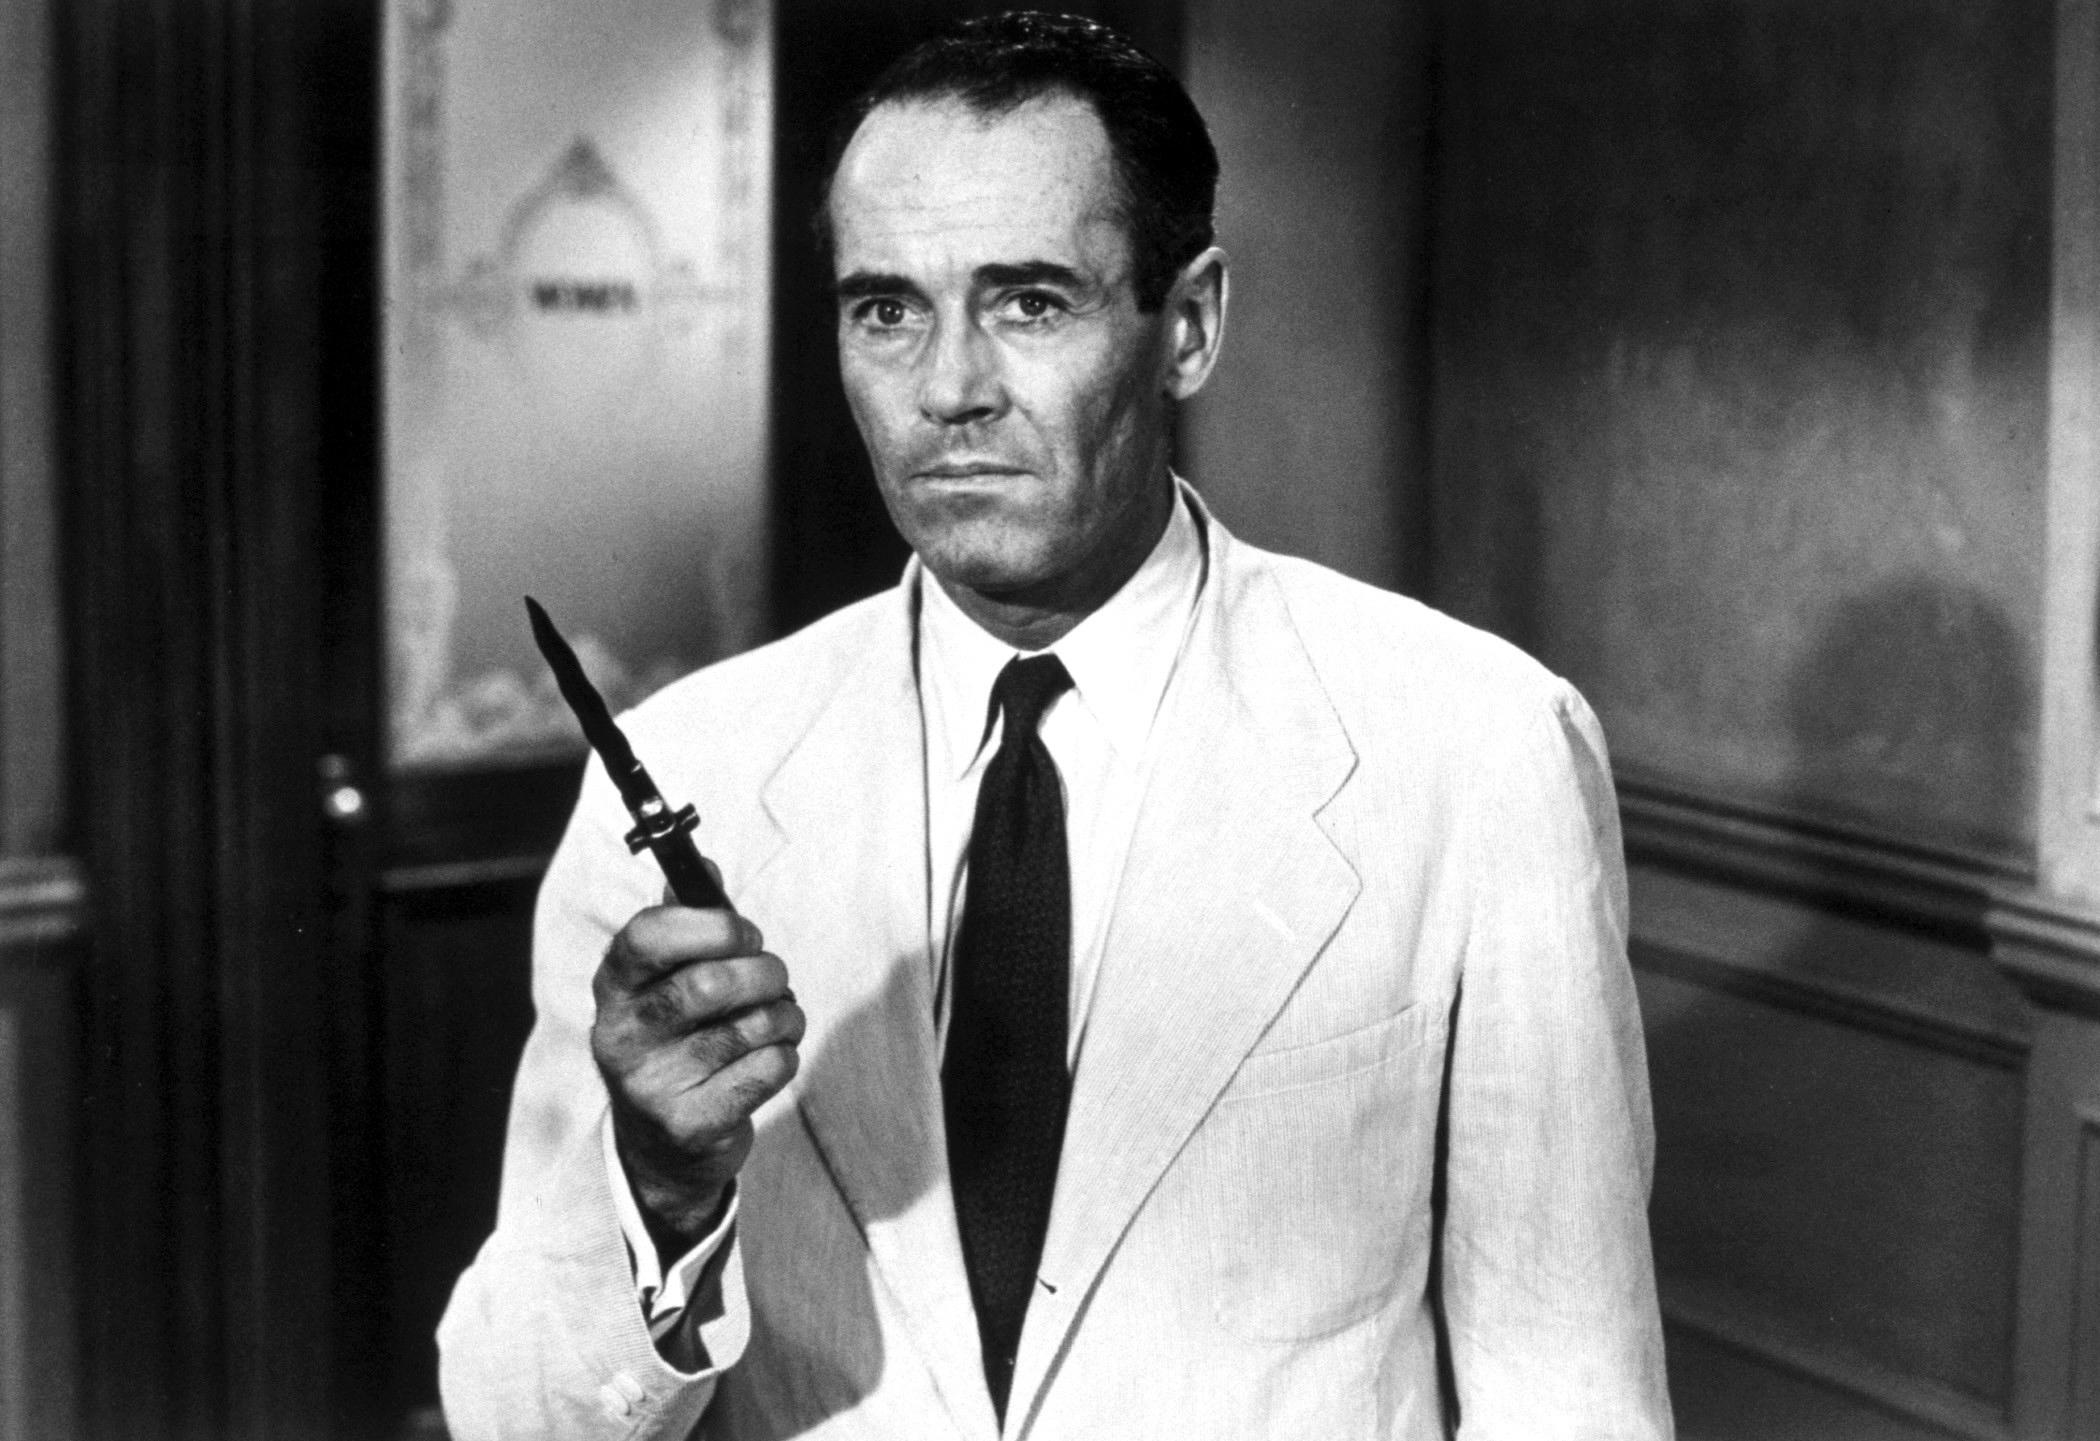 Henry Fonda plays the lead role in the Oscar-nominated 1957 film of *Twelve Angry Men*, which he co-produced.